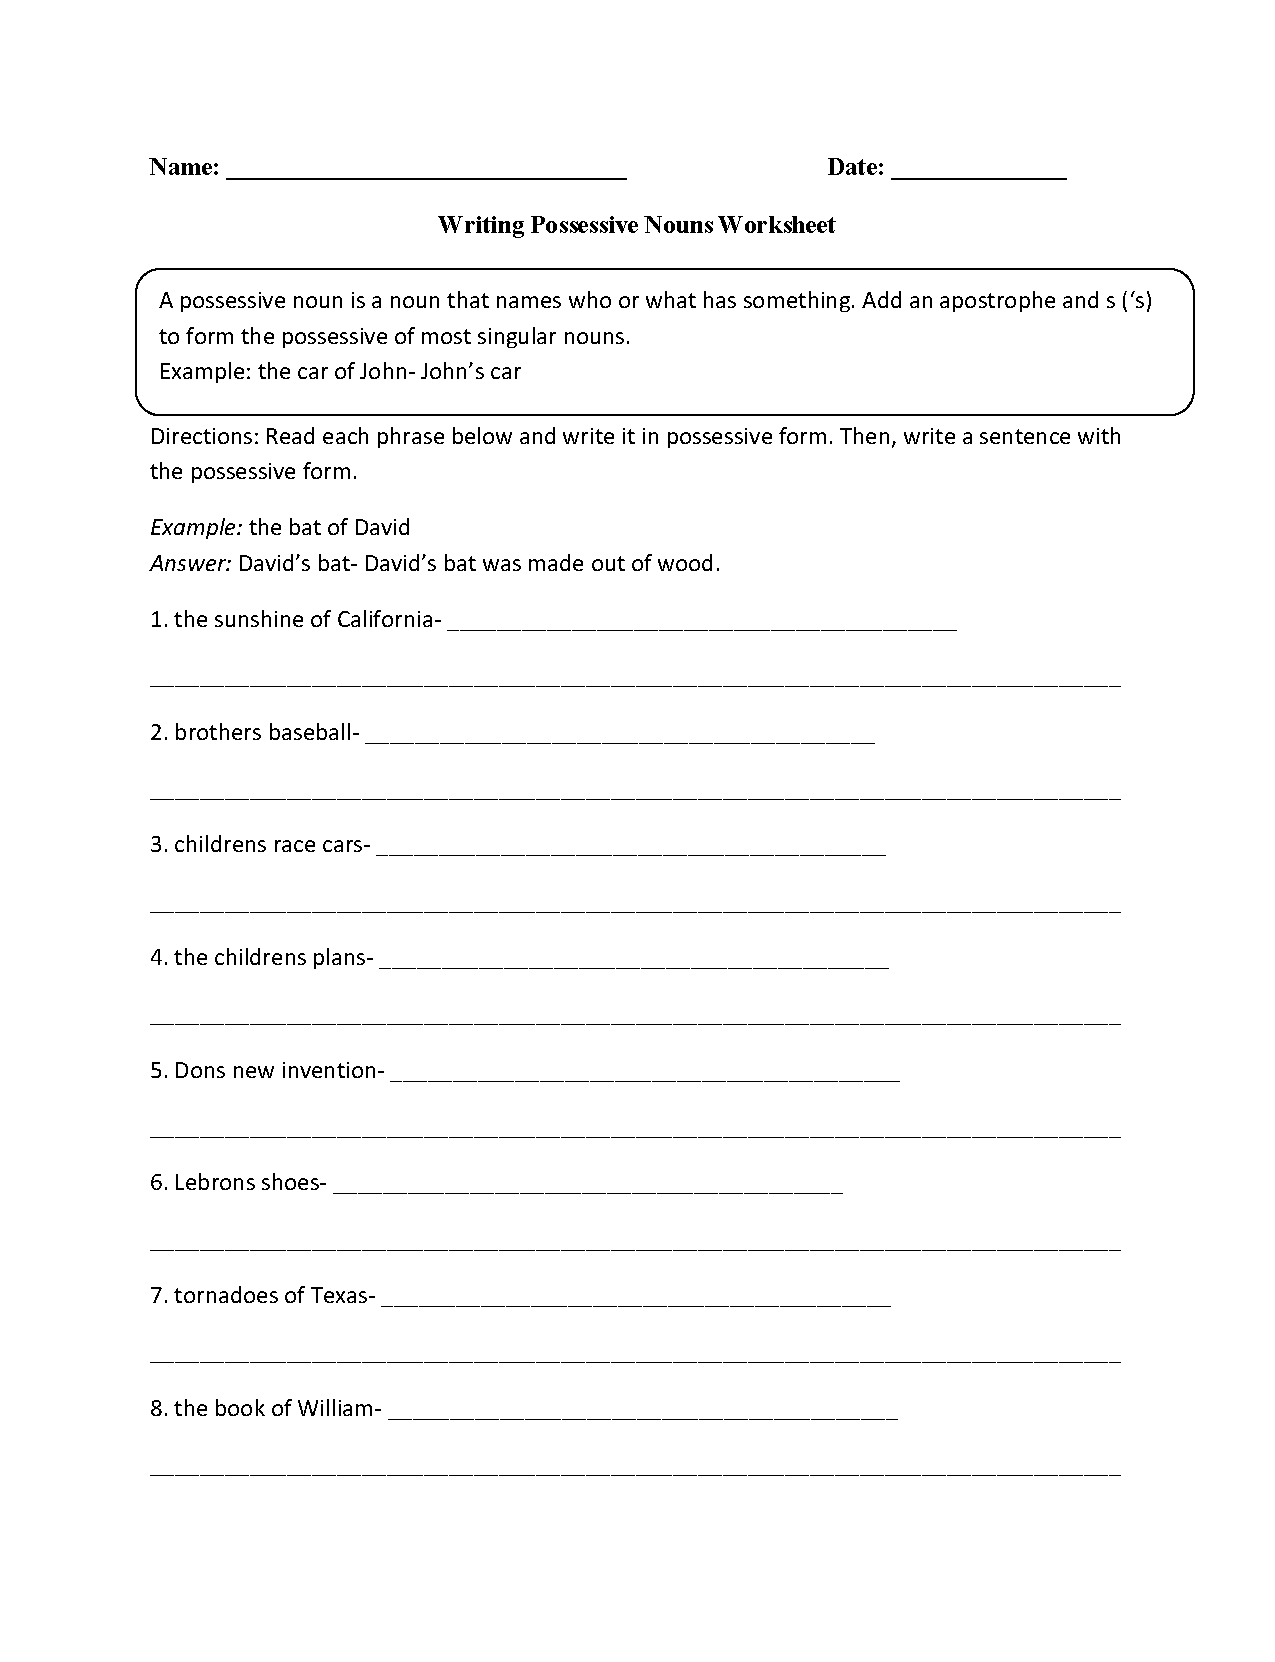 Printables Noun Worksheets High School nouns worksheets possessive worksheet